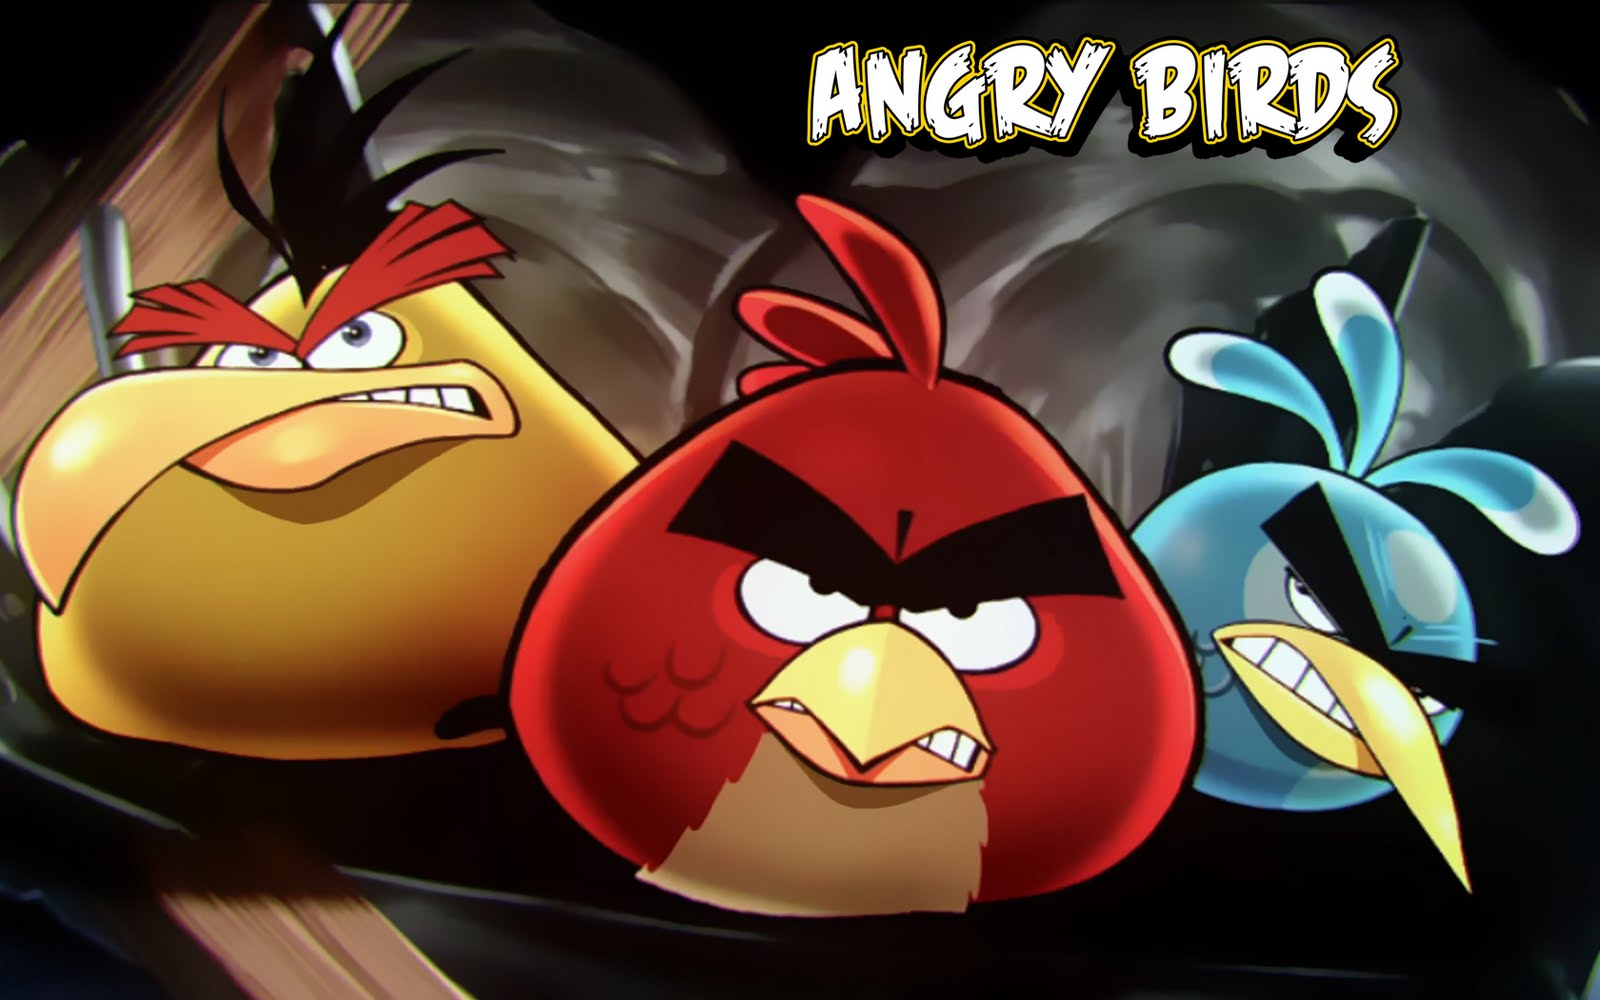 angry birds cute hd wallpapers angry birds cute hd wallpapers 1600x1000